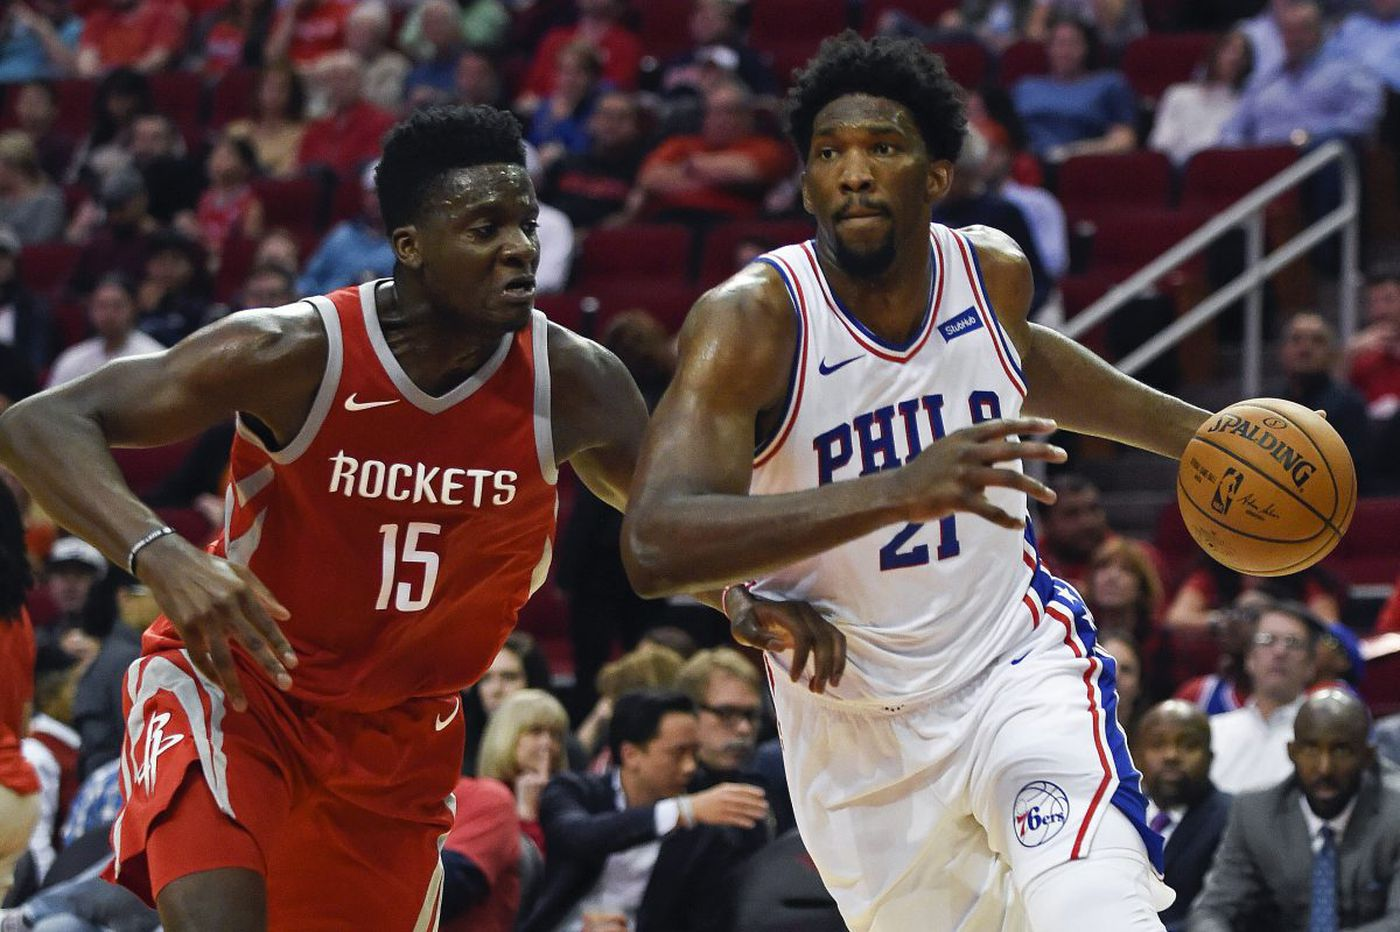 Sixers hold on for a rare win over Rockets